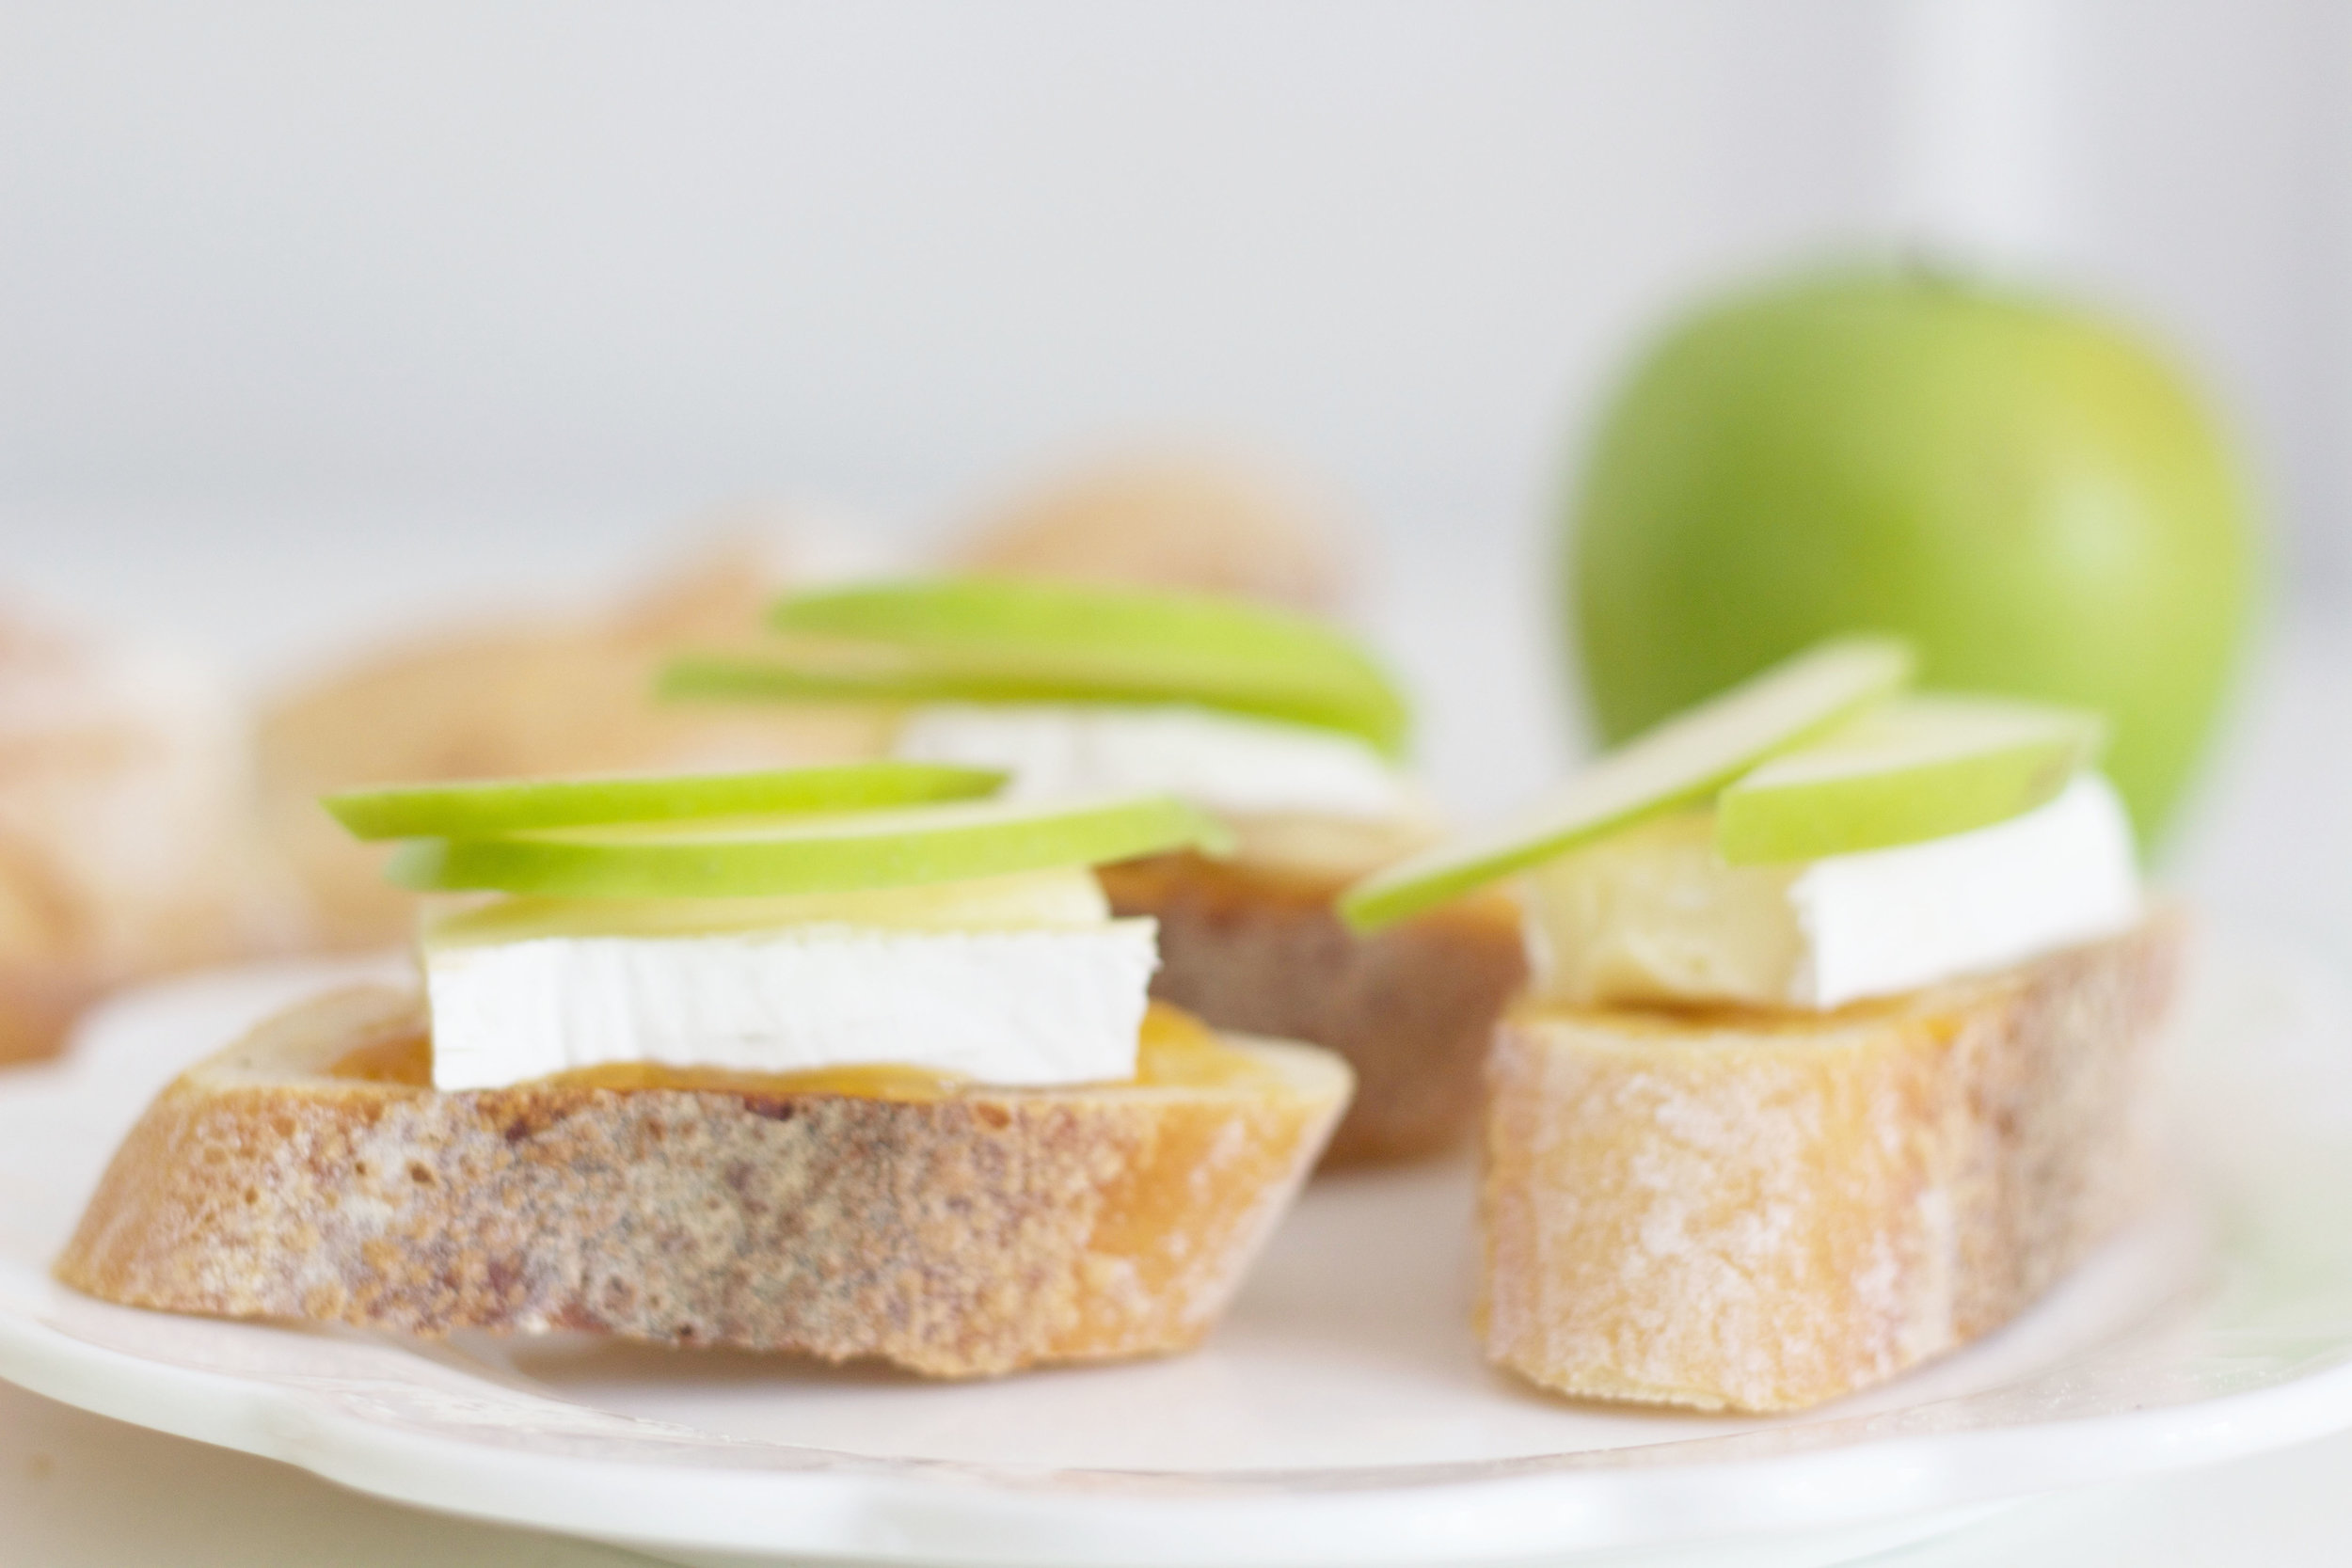 Apple and Brie Bruschetta, So Dressed Up